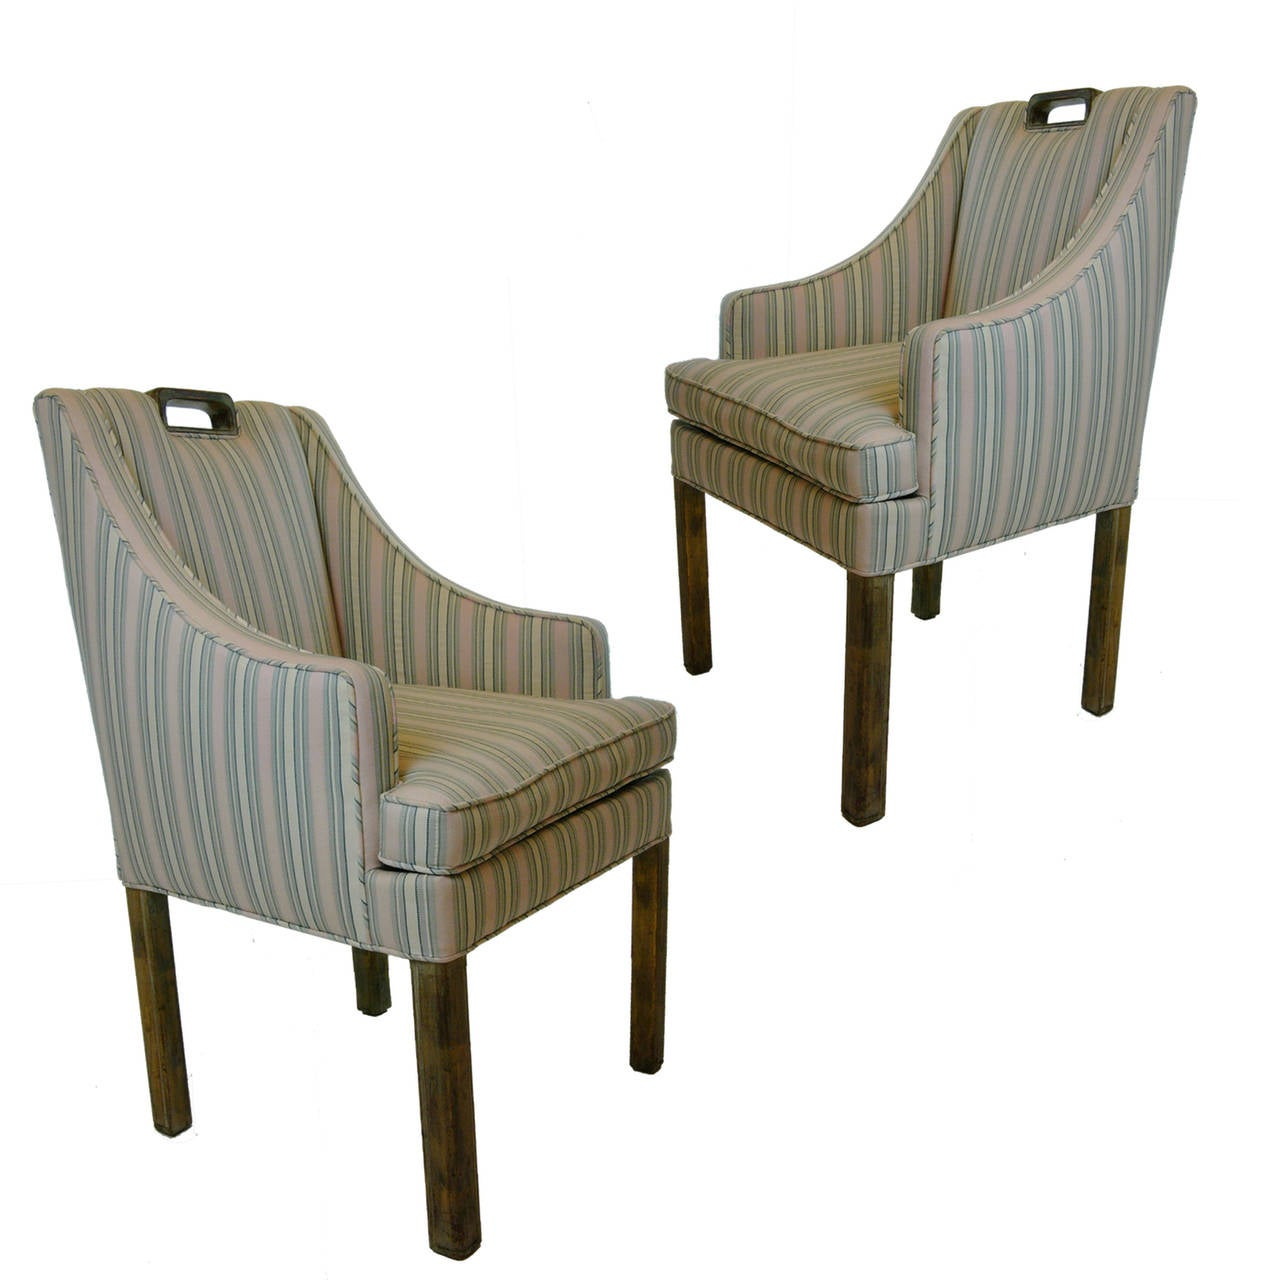 Sitting Chairs Handsome Pair James Mont Tuxedo Occasional Armchairs